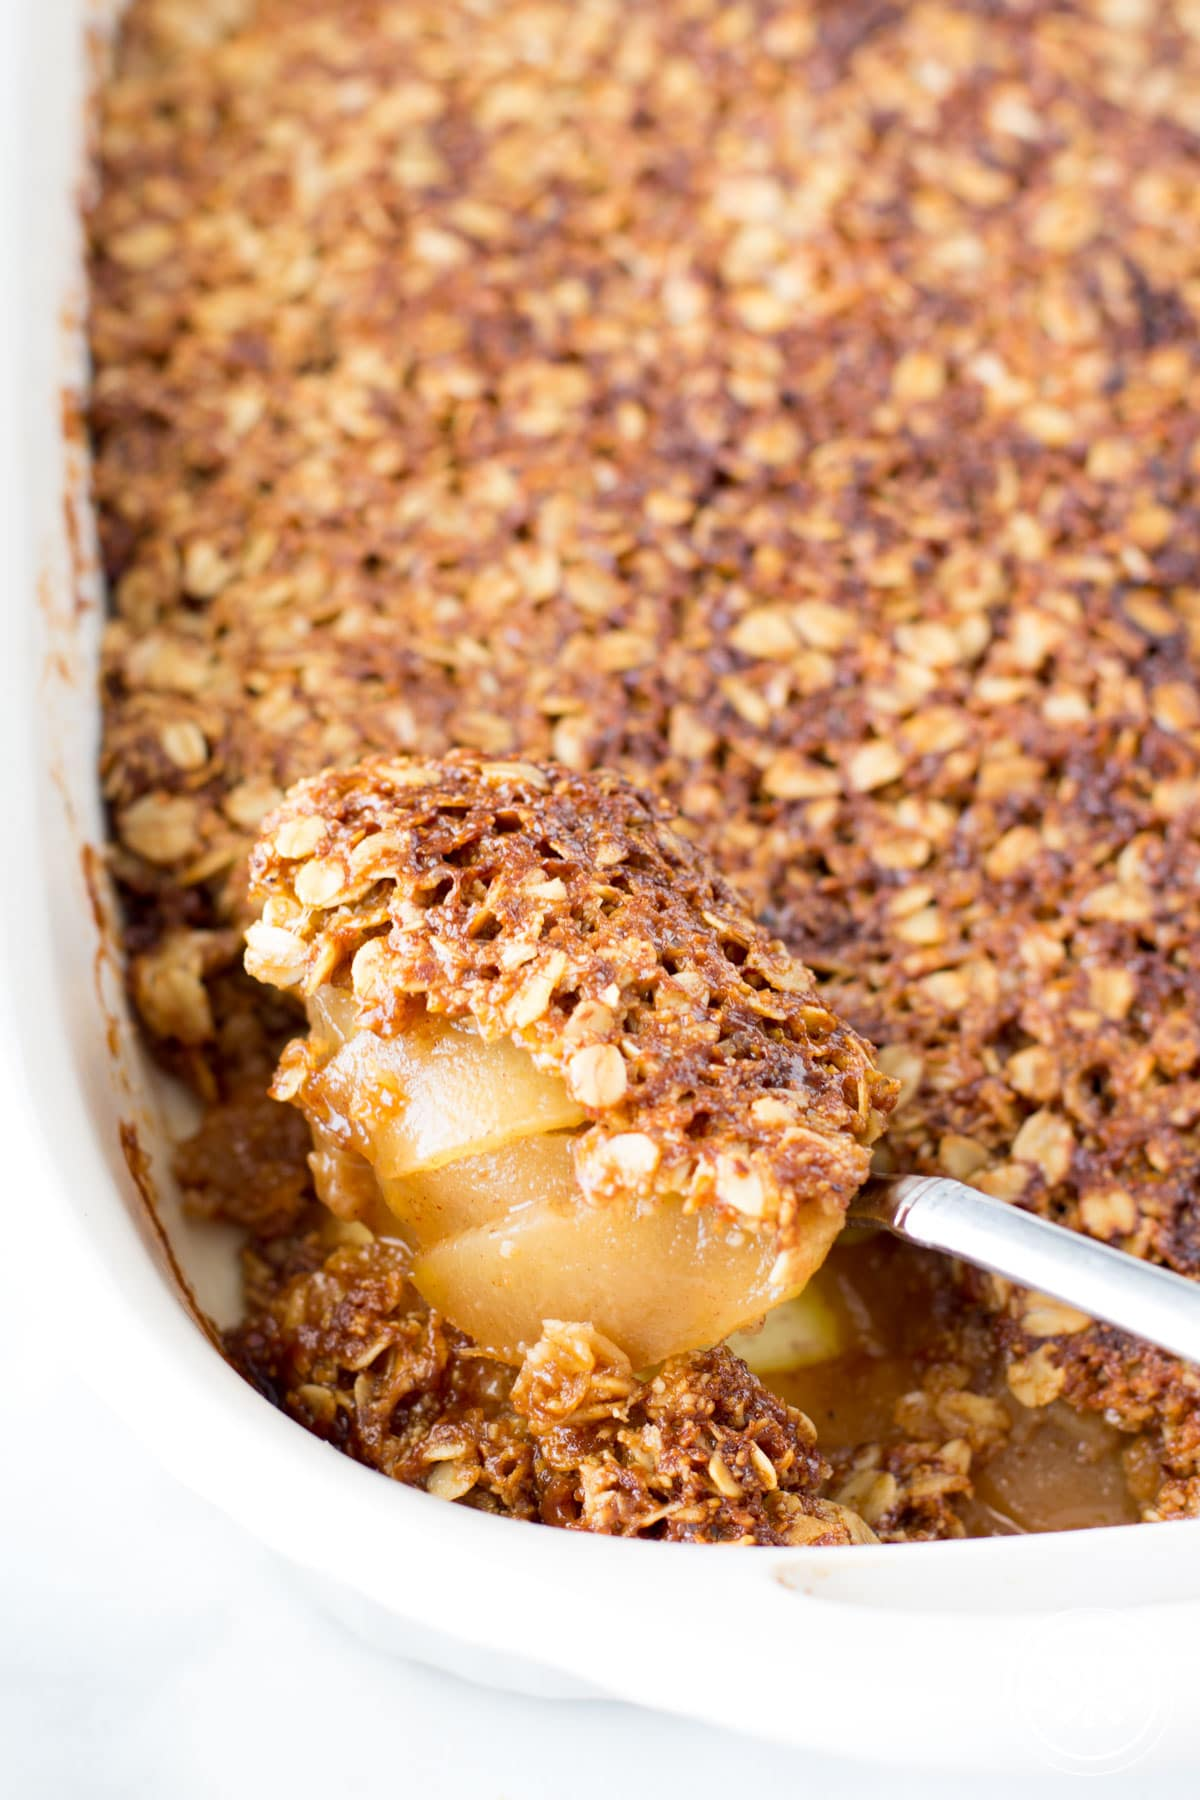 Oatmeal Crust Gluten Free Apple Crisp